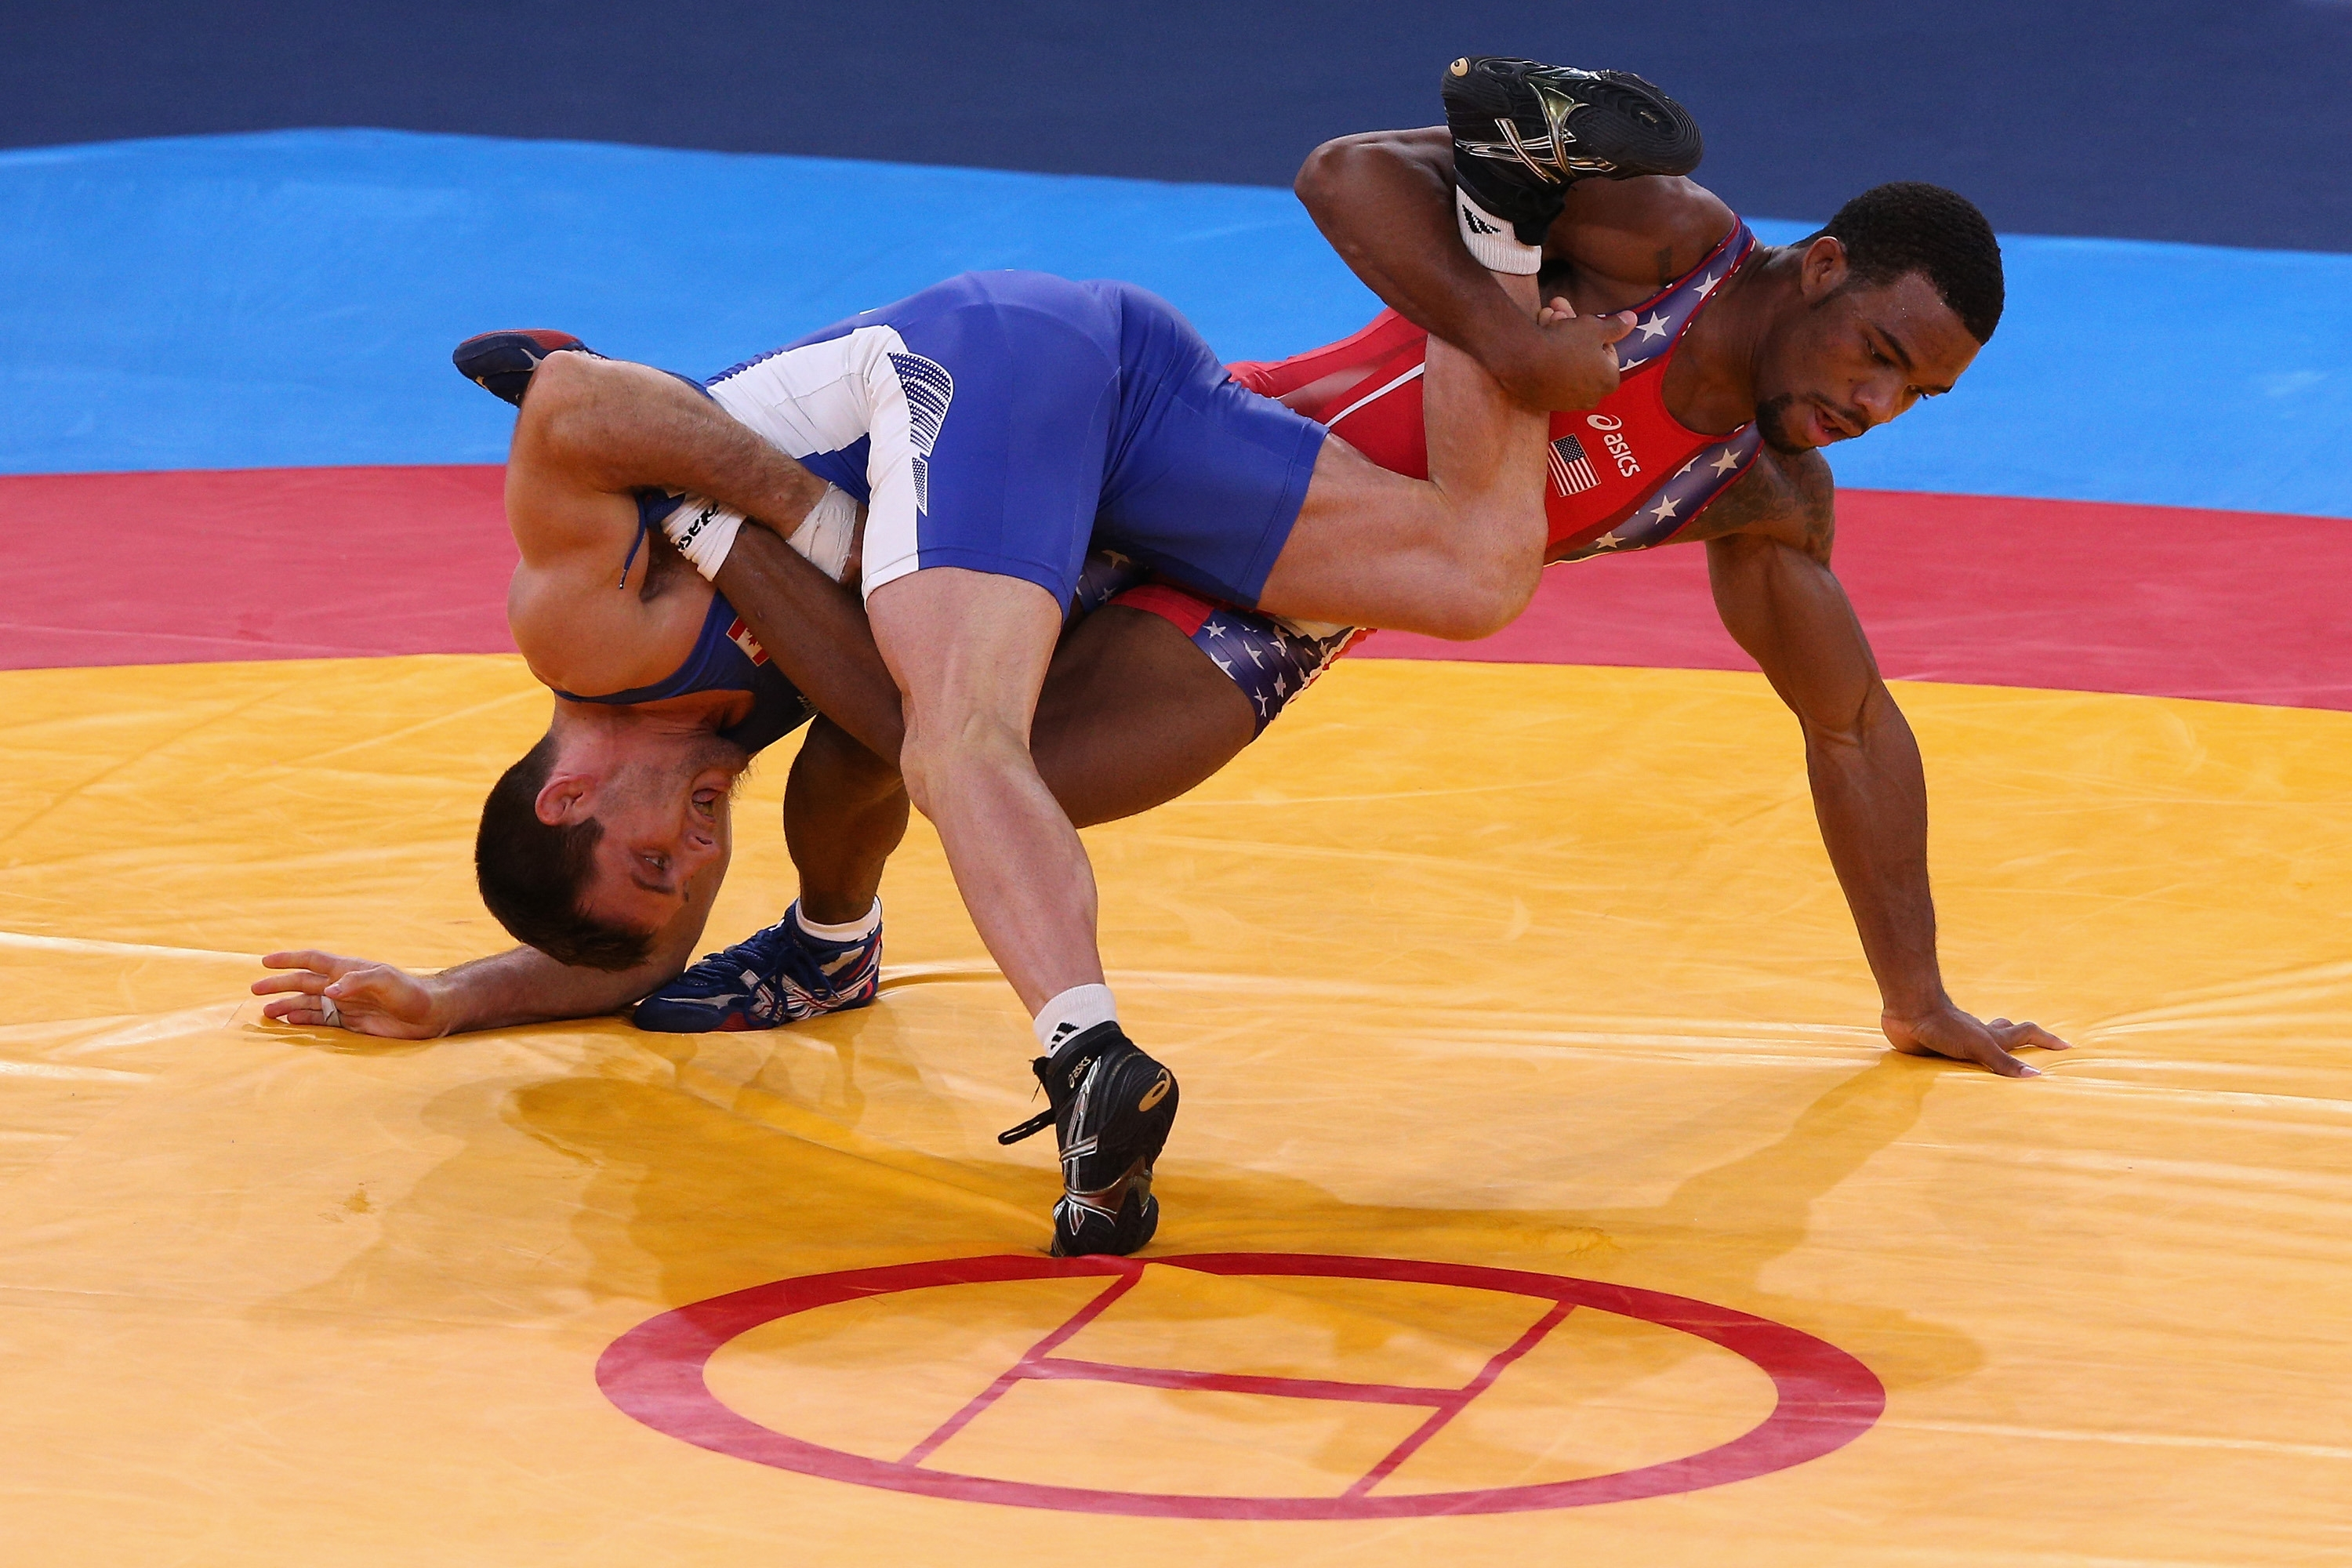 Jordan Burroughs of the United States, right, won the gold medal in the 74 kg class in the 2012 London Olympic Games.